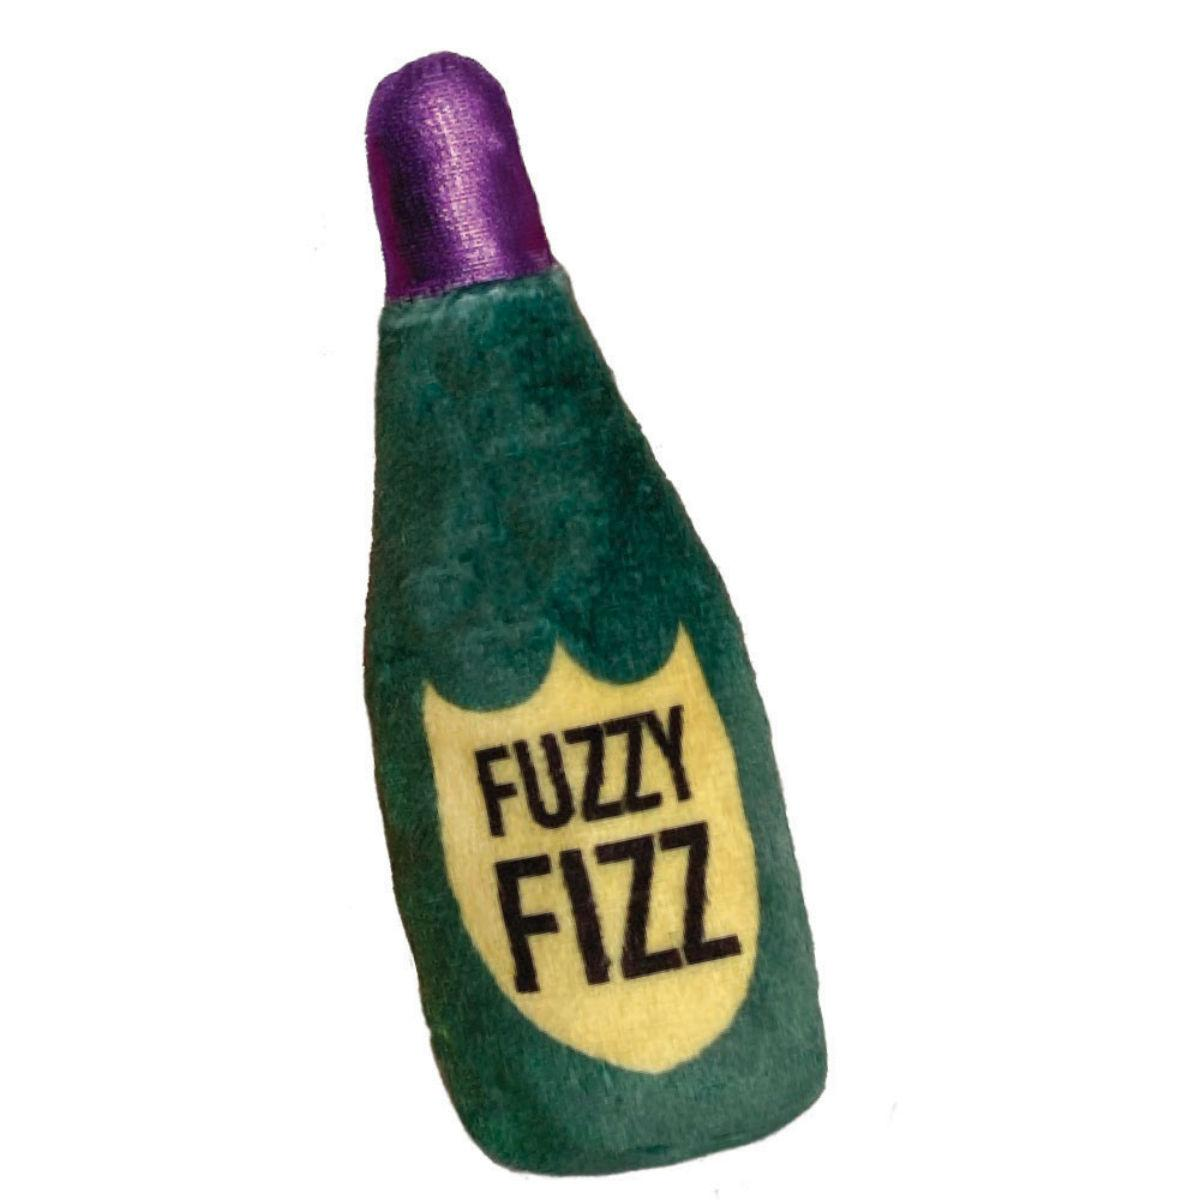 Kittybelles Fuzzy Fizz Plush Booze Cat Toy